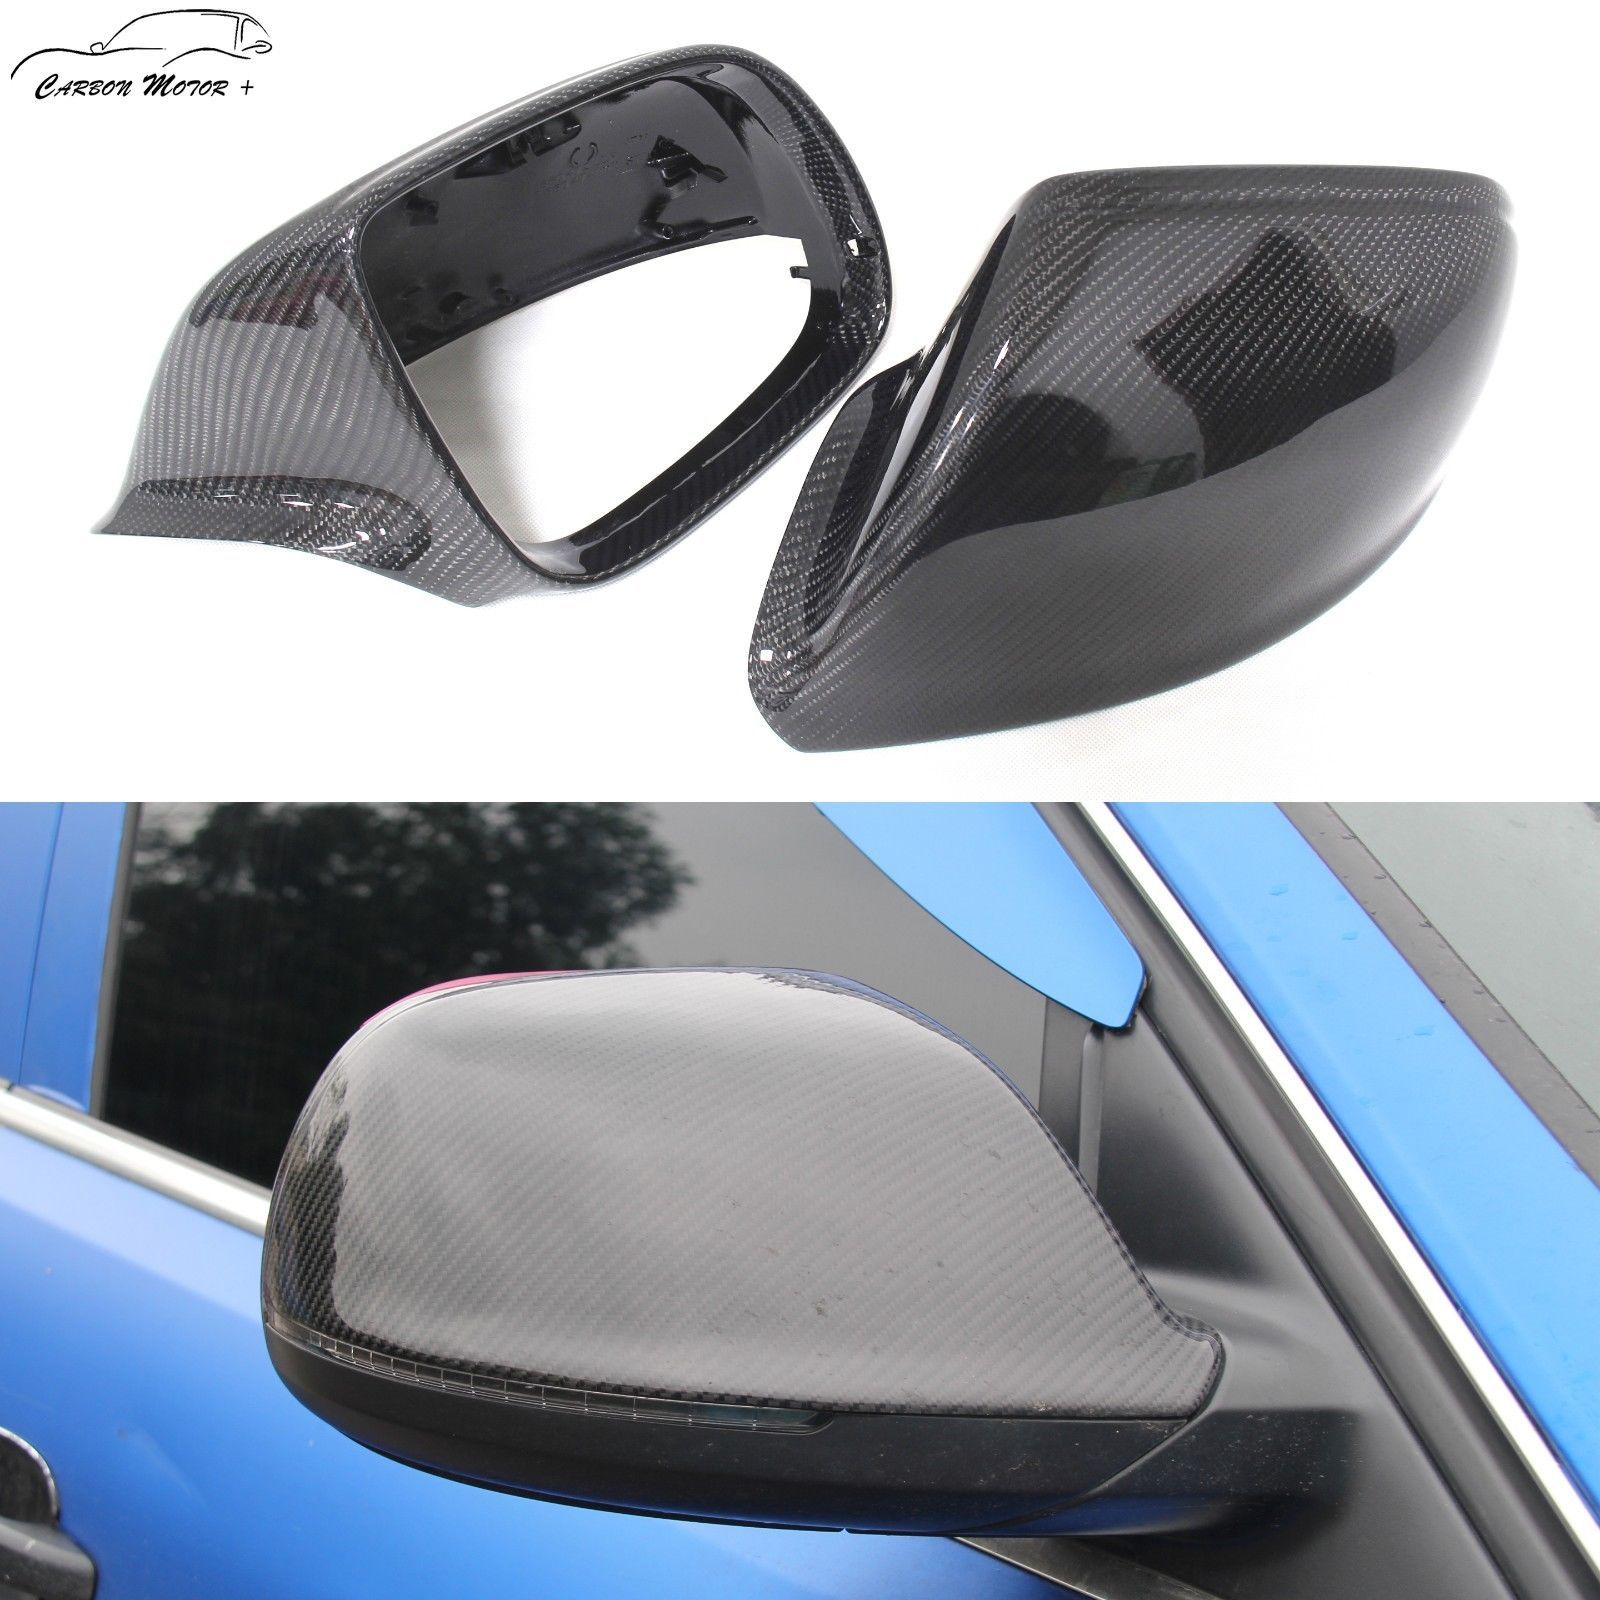 Replacement Carbon Fiber Mirror Cover for Audi Q5 Q7 SQ5 without